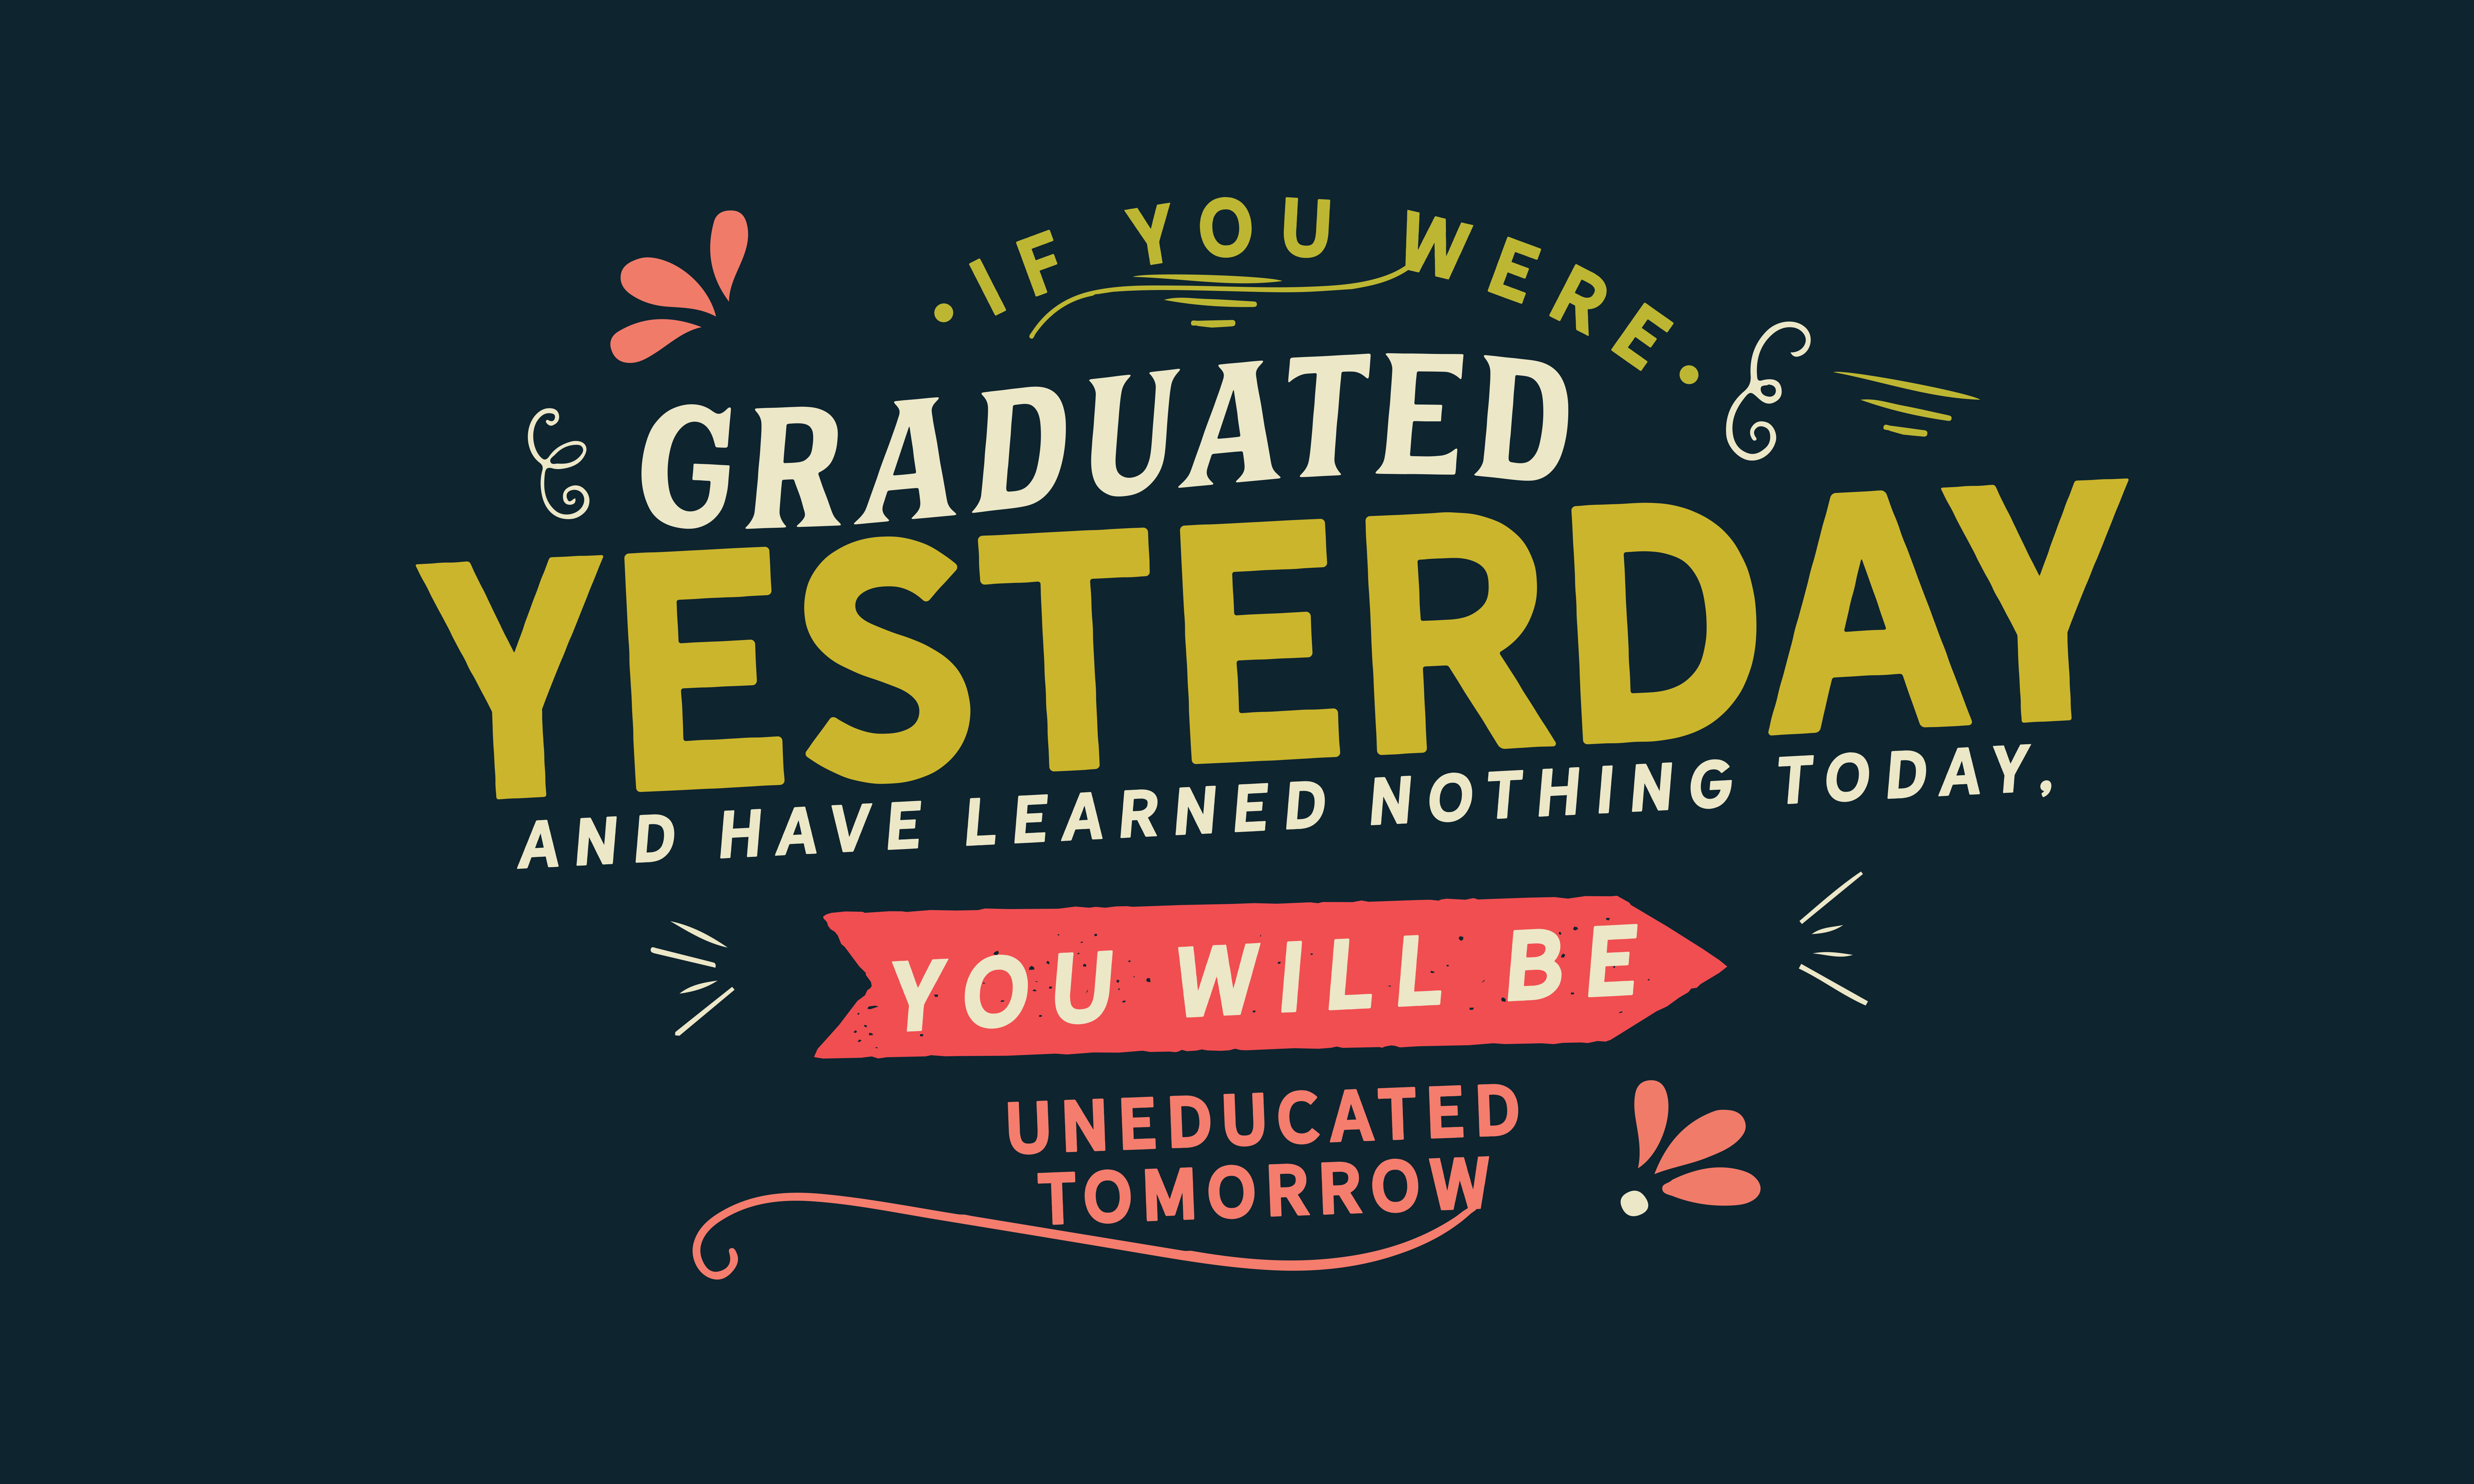 Download Free You Will Be Uneducated Tomorrow Graphic By Baraeiji Creative for Cricut Explore, Silhouette and other cutting machines.